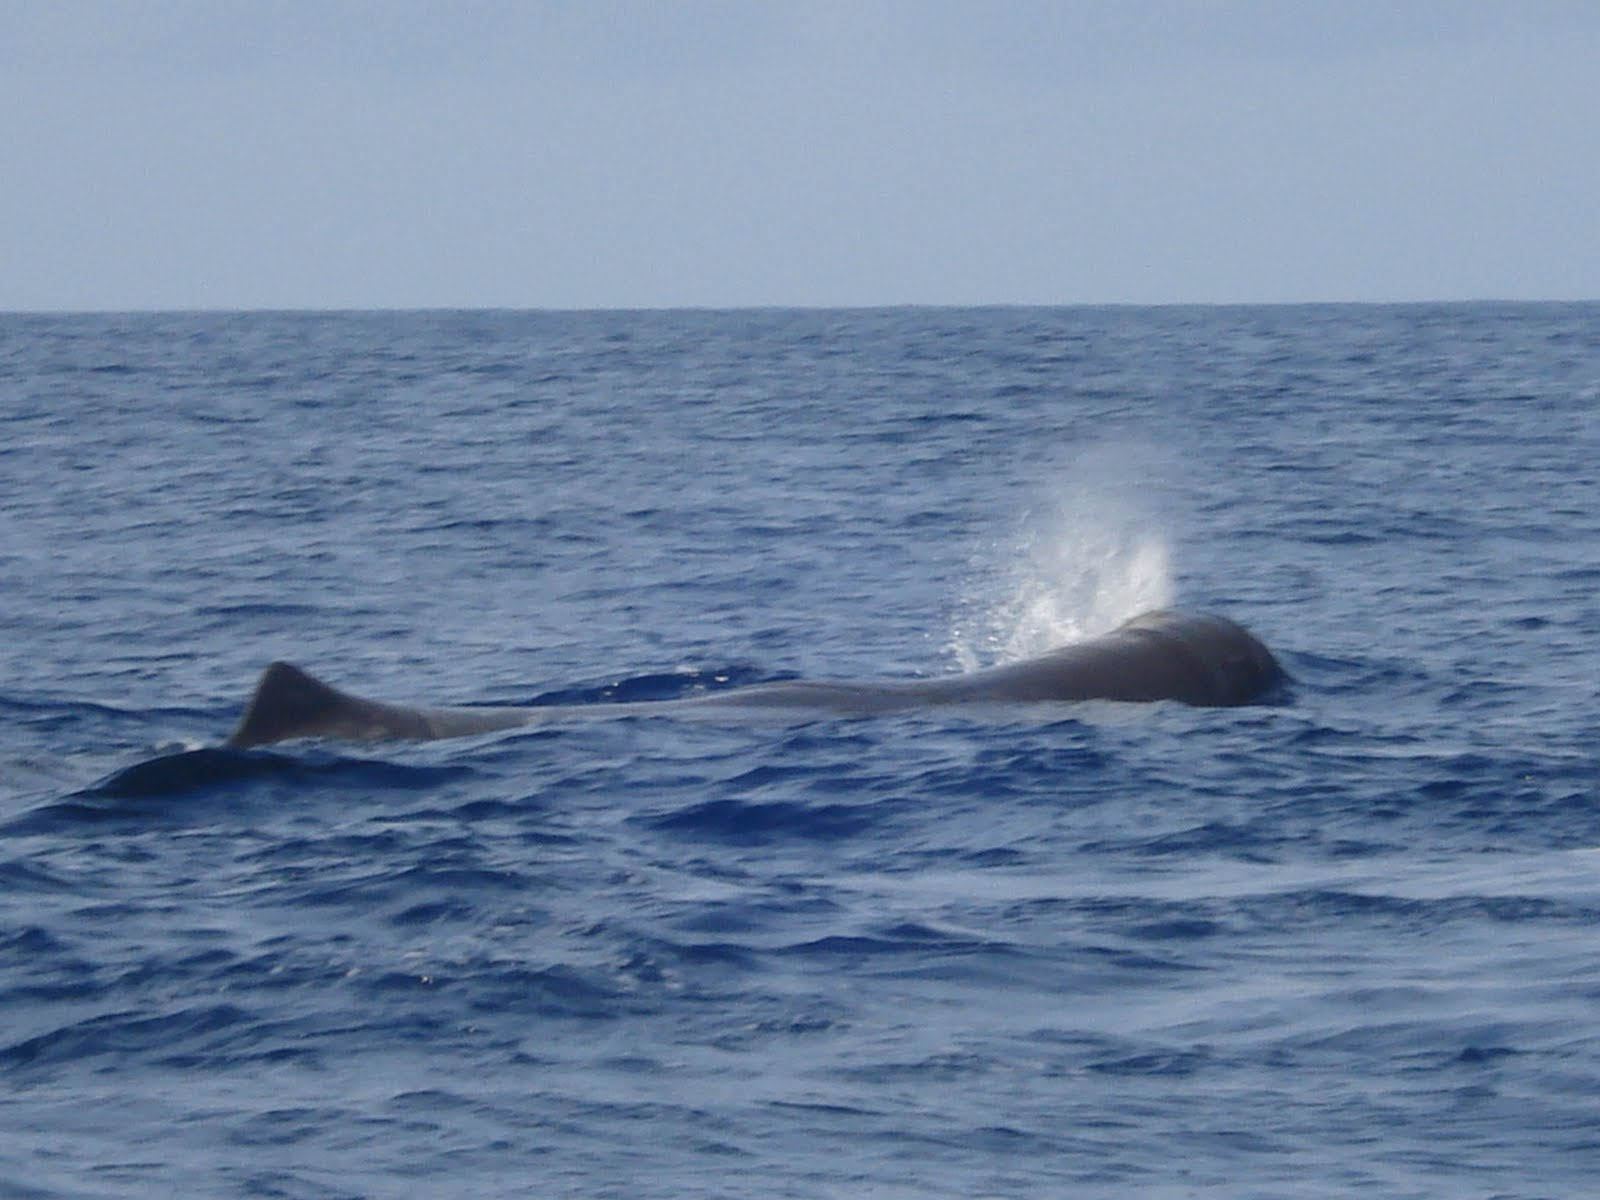 Whale Watching Tours - Observacao de Cetaceos